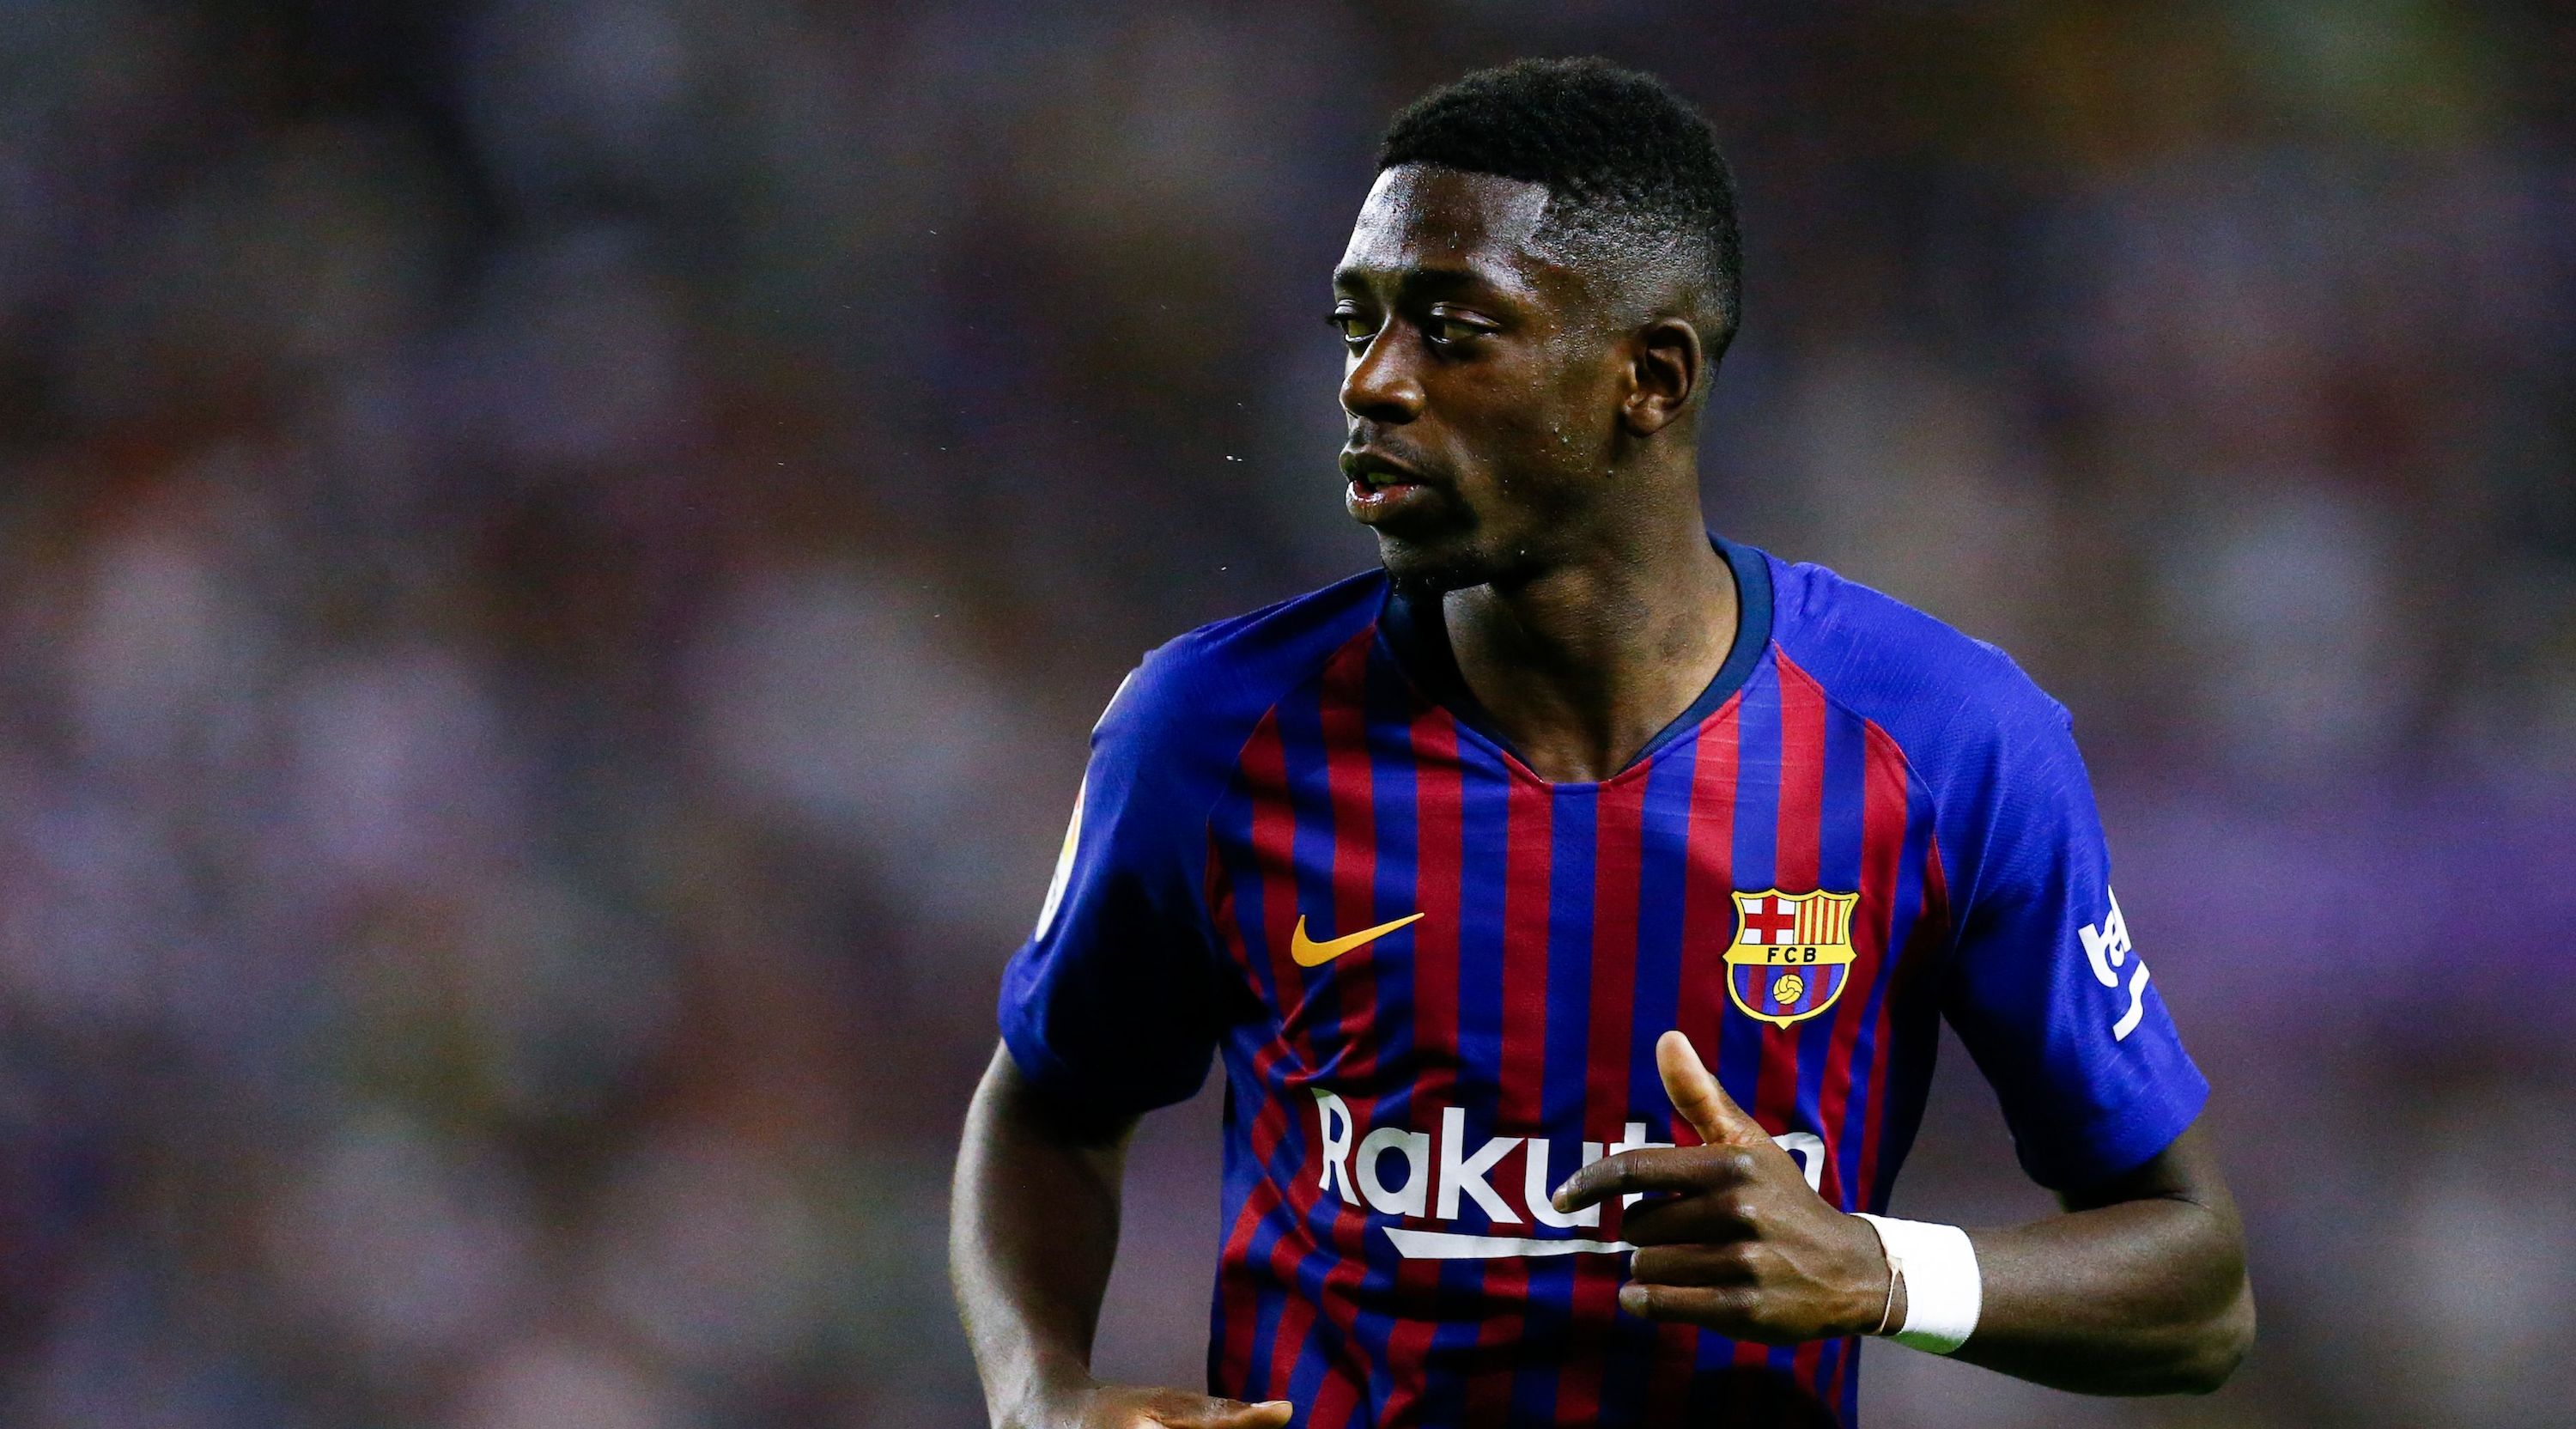 Barcelona's French forward Ousmane Dembele runs during the Spanish league football match between Real Valladolid and FC Barcelona at the Jose Zorrilla Stadium in Valladolid on August 25, 2018. (Photo by Benjamin CREMEL / AFP) (Photo credit should read BENJAMIN CREMEL/AFP/Getty Images)